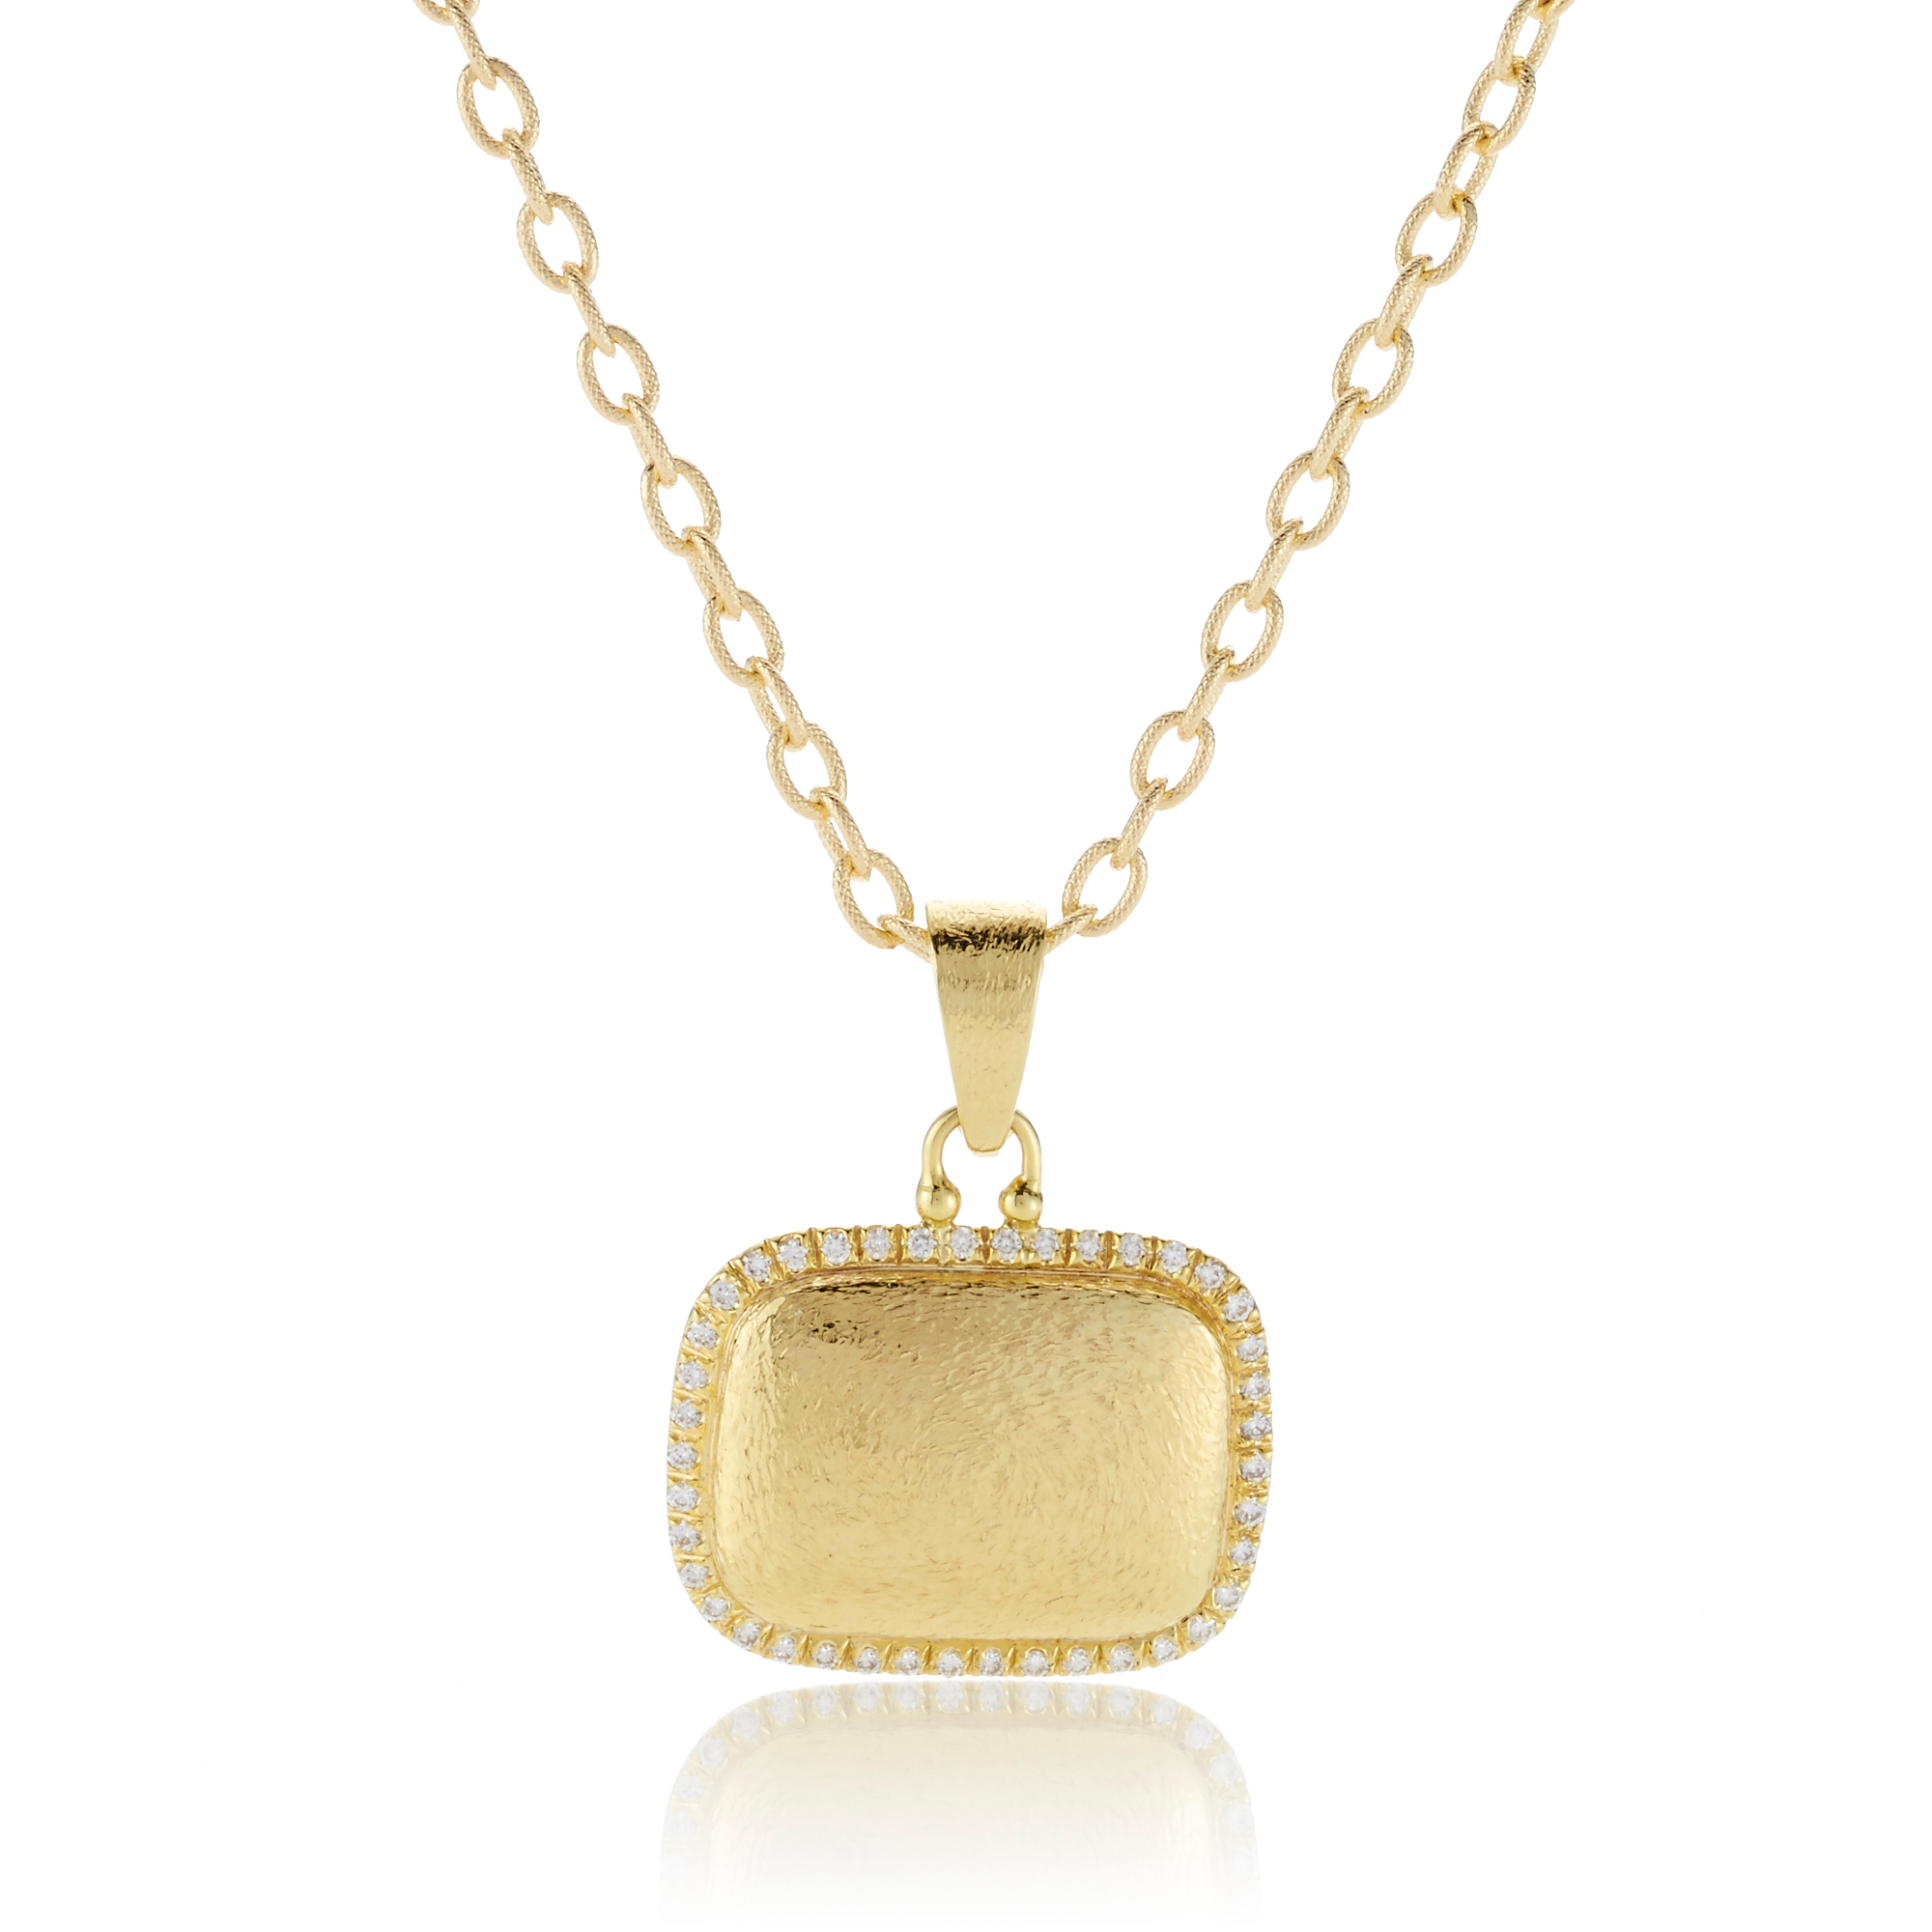 Hammered Gold and Diamond Square Pendant